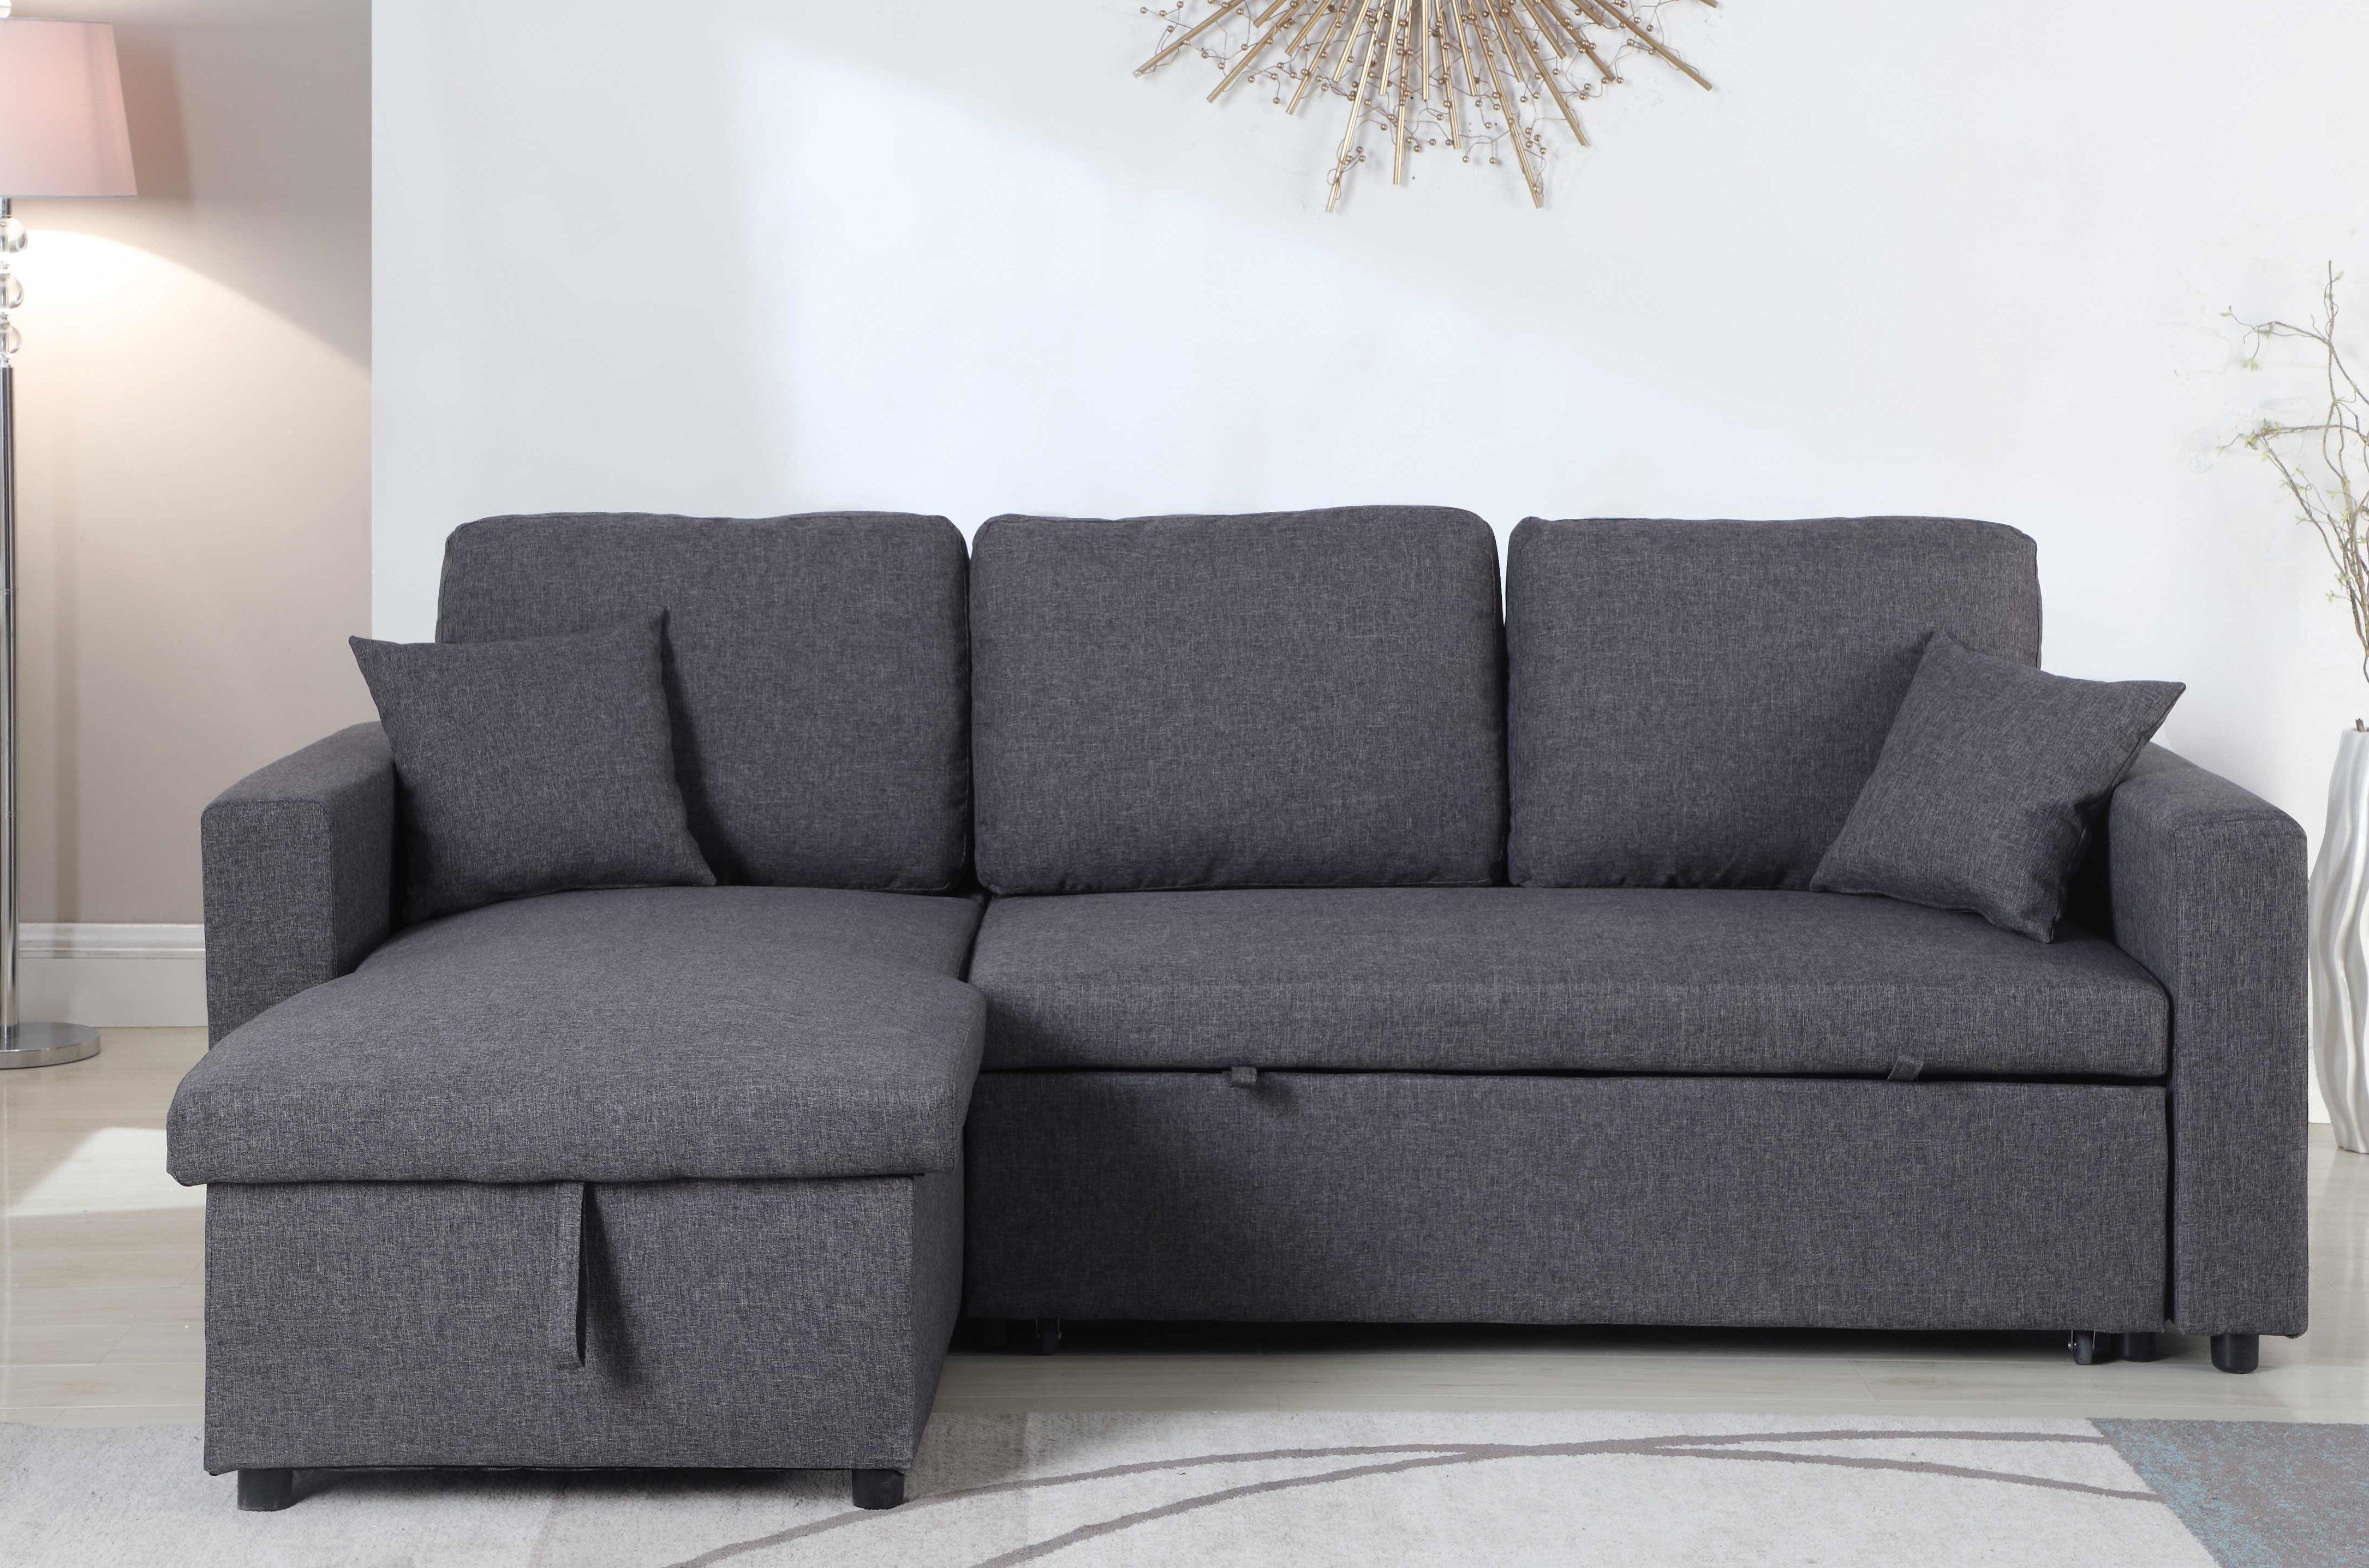 Vernita 87 Reversible Sleeper Sectional With Images Pull Out Bed Sleeper Sectional Sectional Sofa Couch